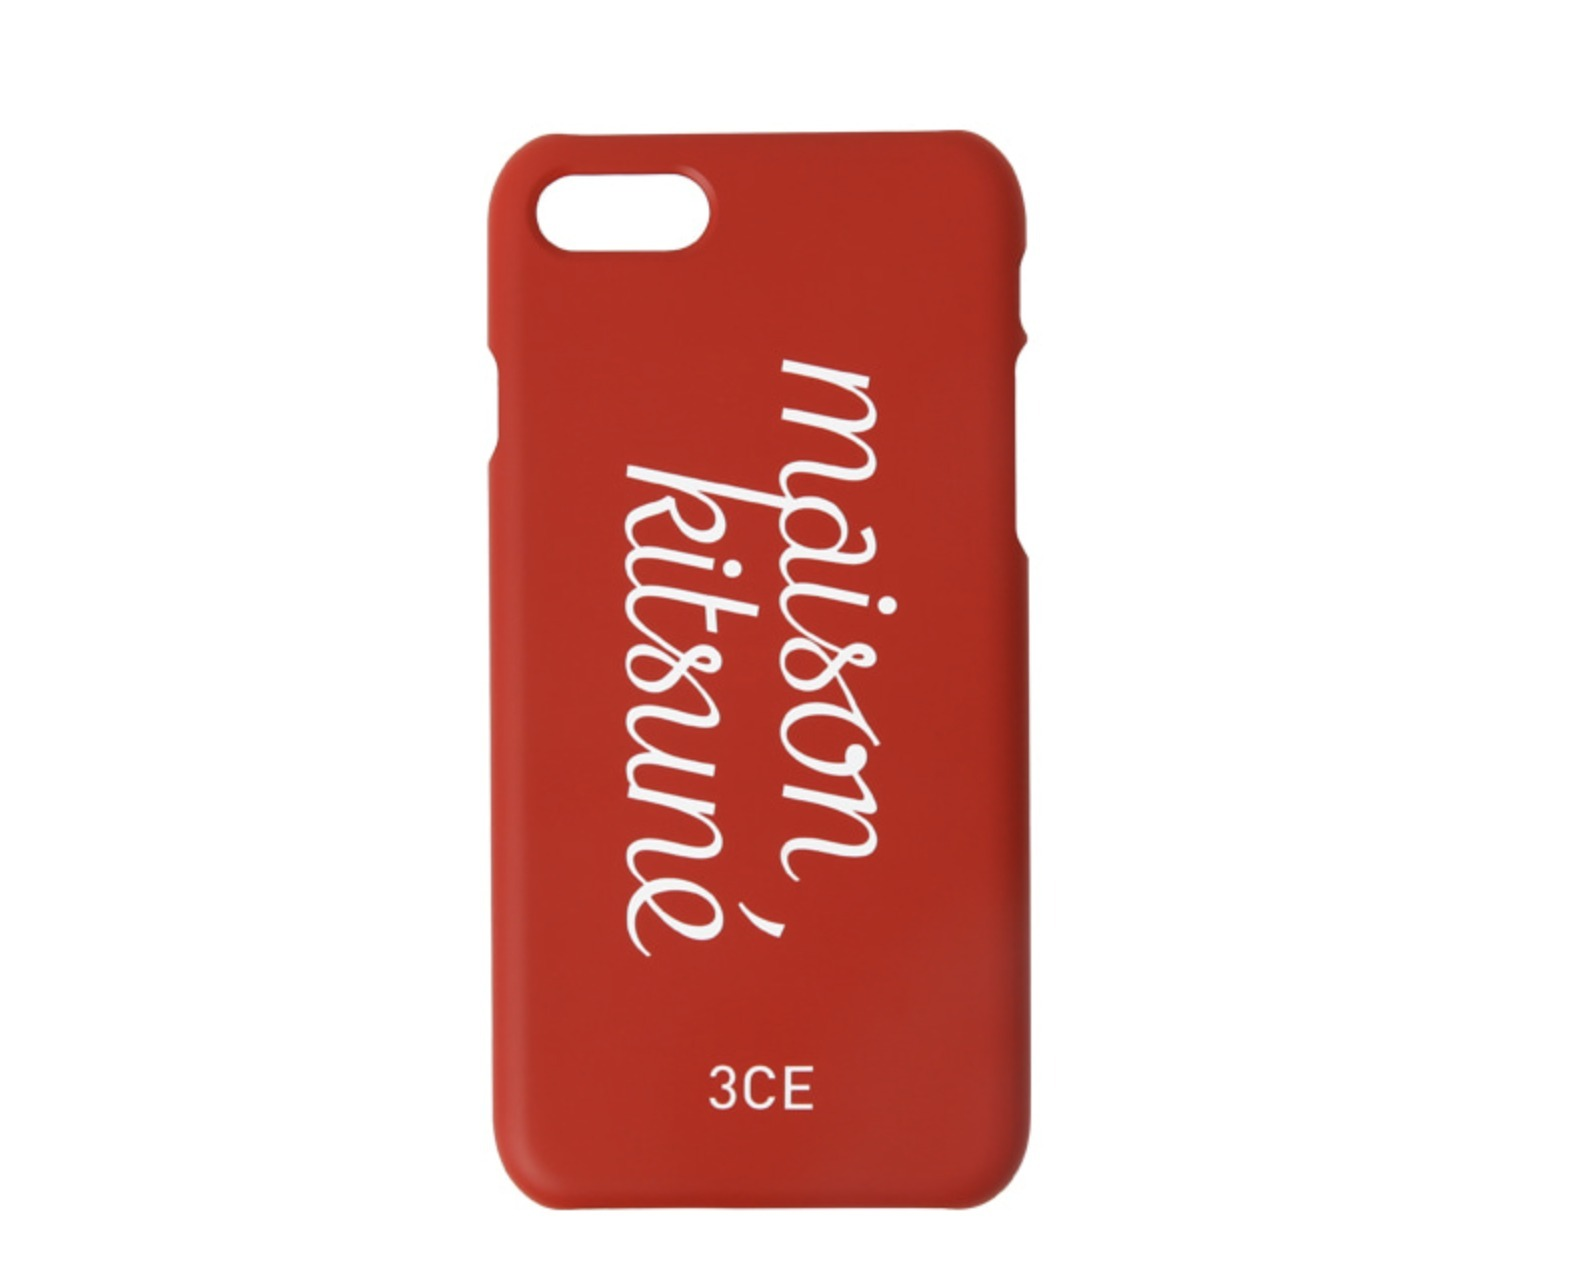 コラボ 3CE x MAISON KITSUNE PHONE CASE / iphone7